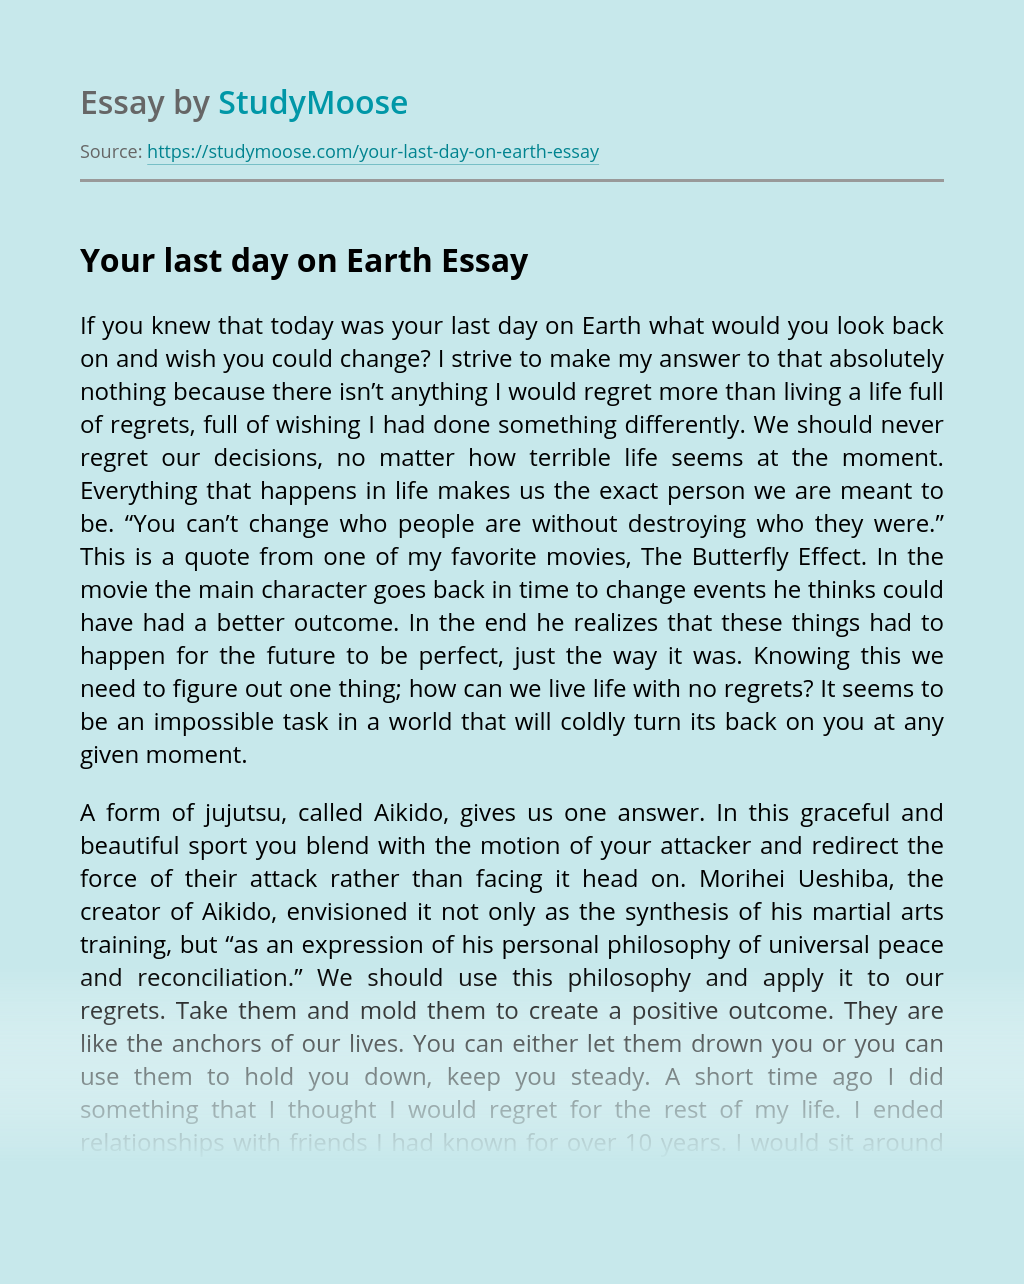 Your last day on Earth